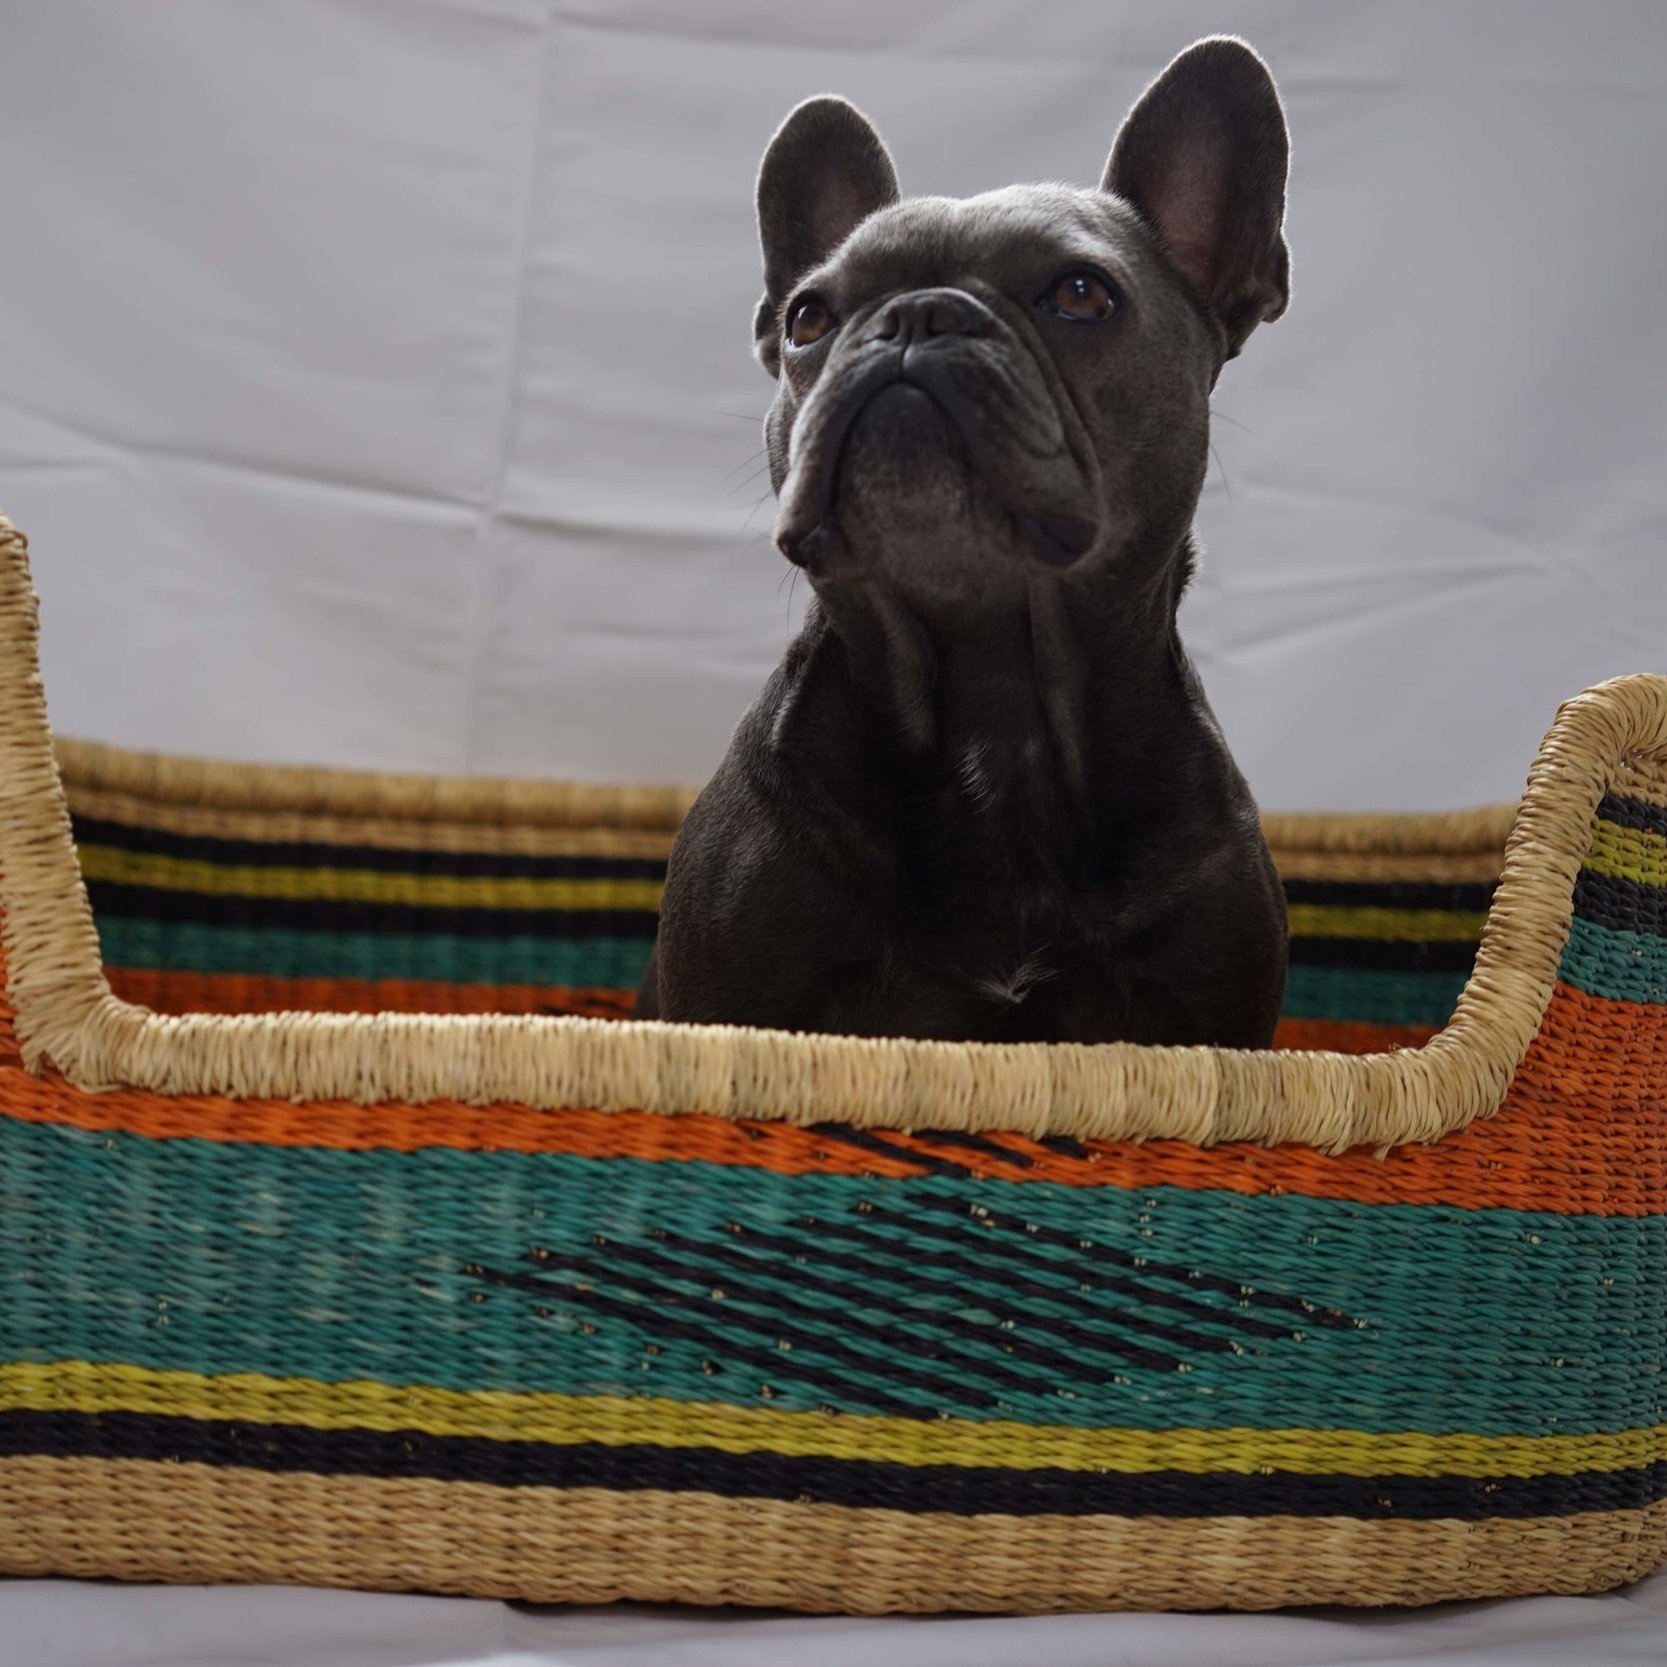 ISSA DOG BASKET- LARGESize: 76cm x 50cm x 28cm Approx - £140